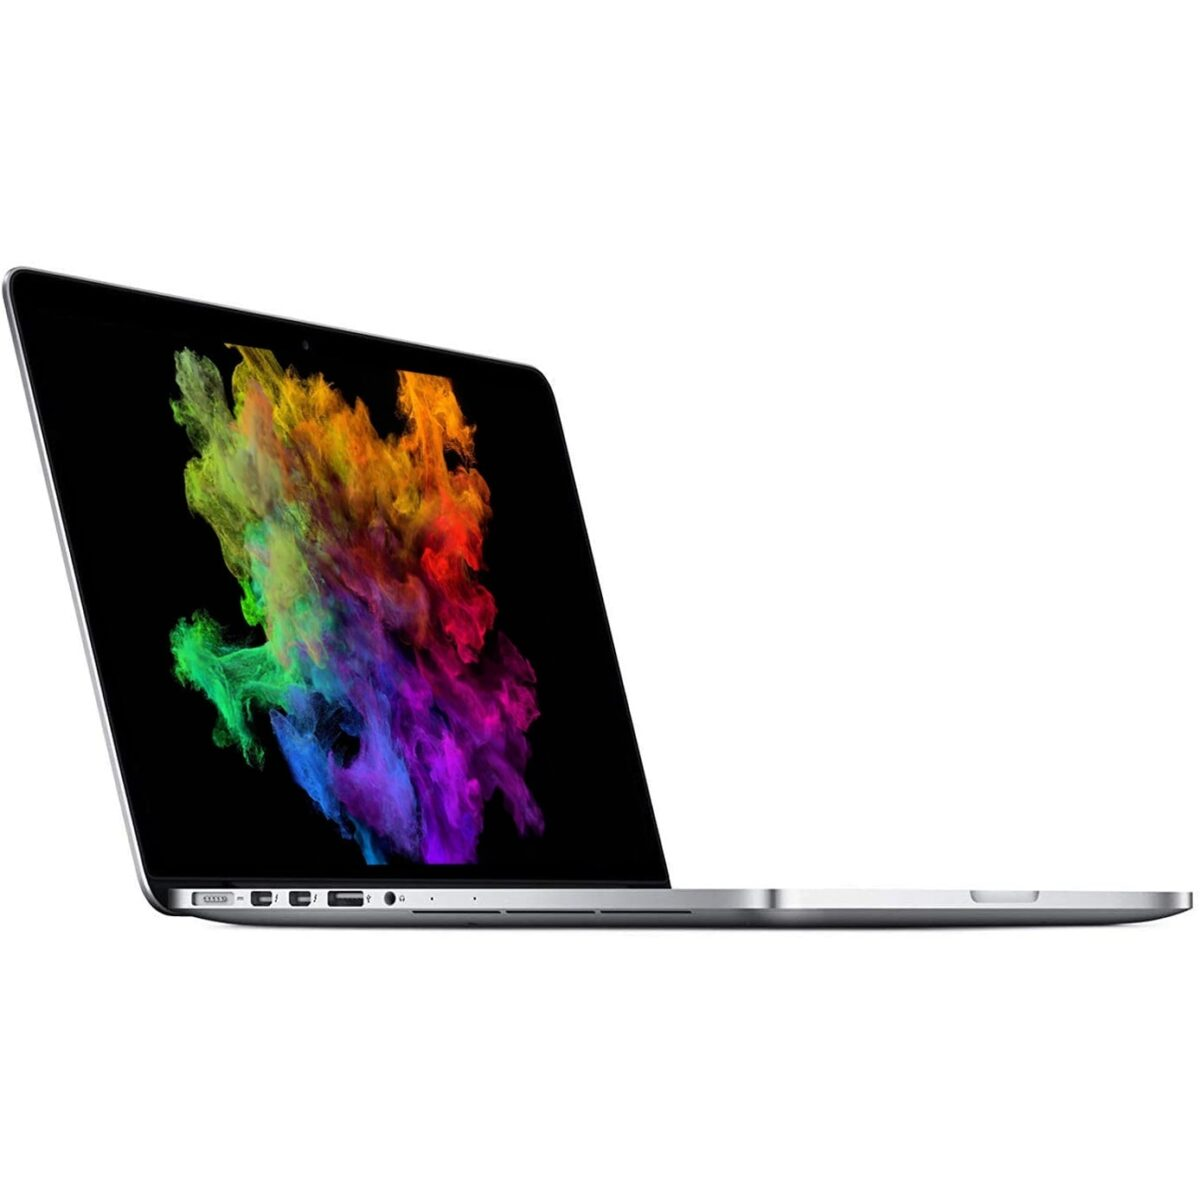 "Apple Macbook Pro 13.3"" A1502 Powerful Core i5 256GB SSD 8GB RAM 2.7GHZ OS Big Sur"